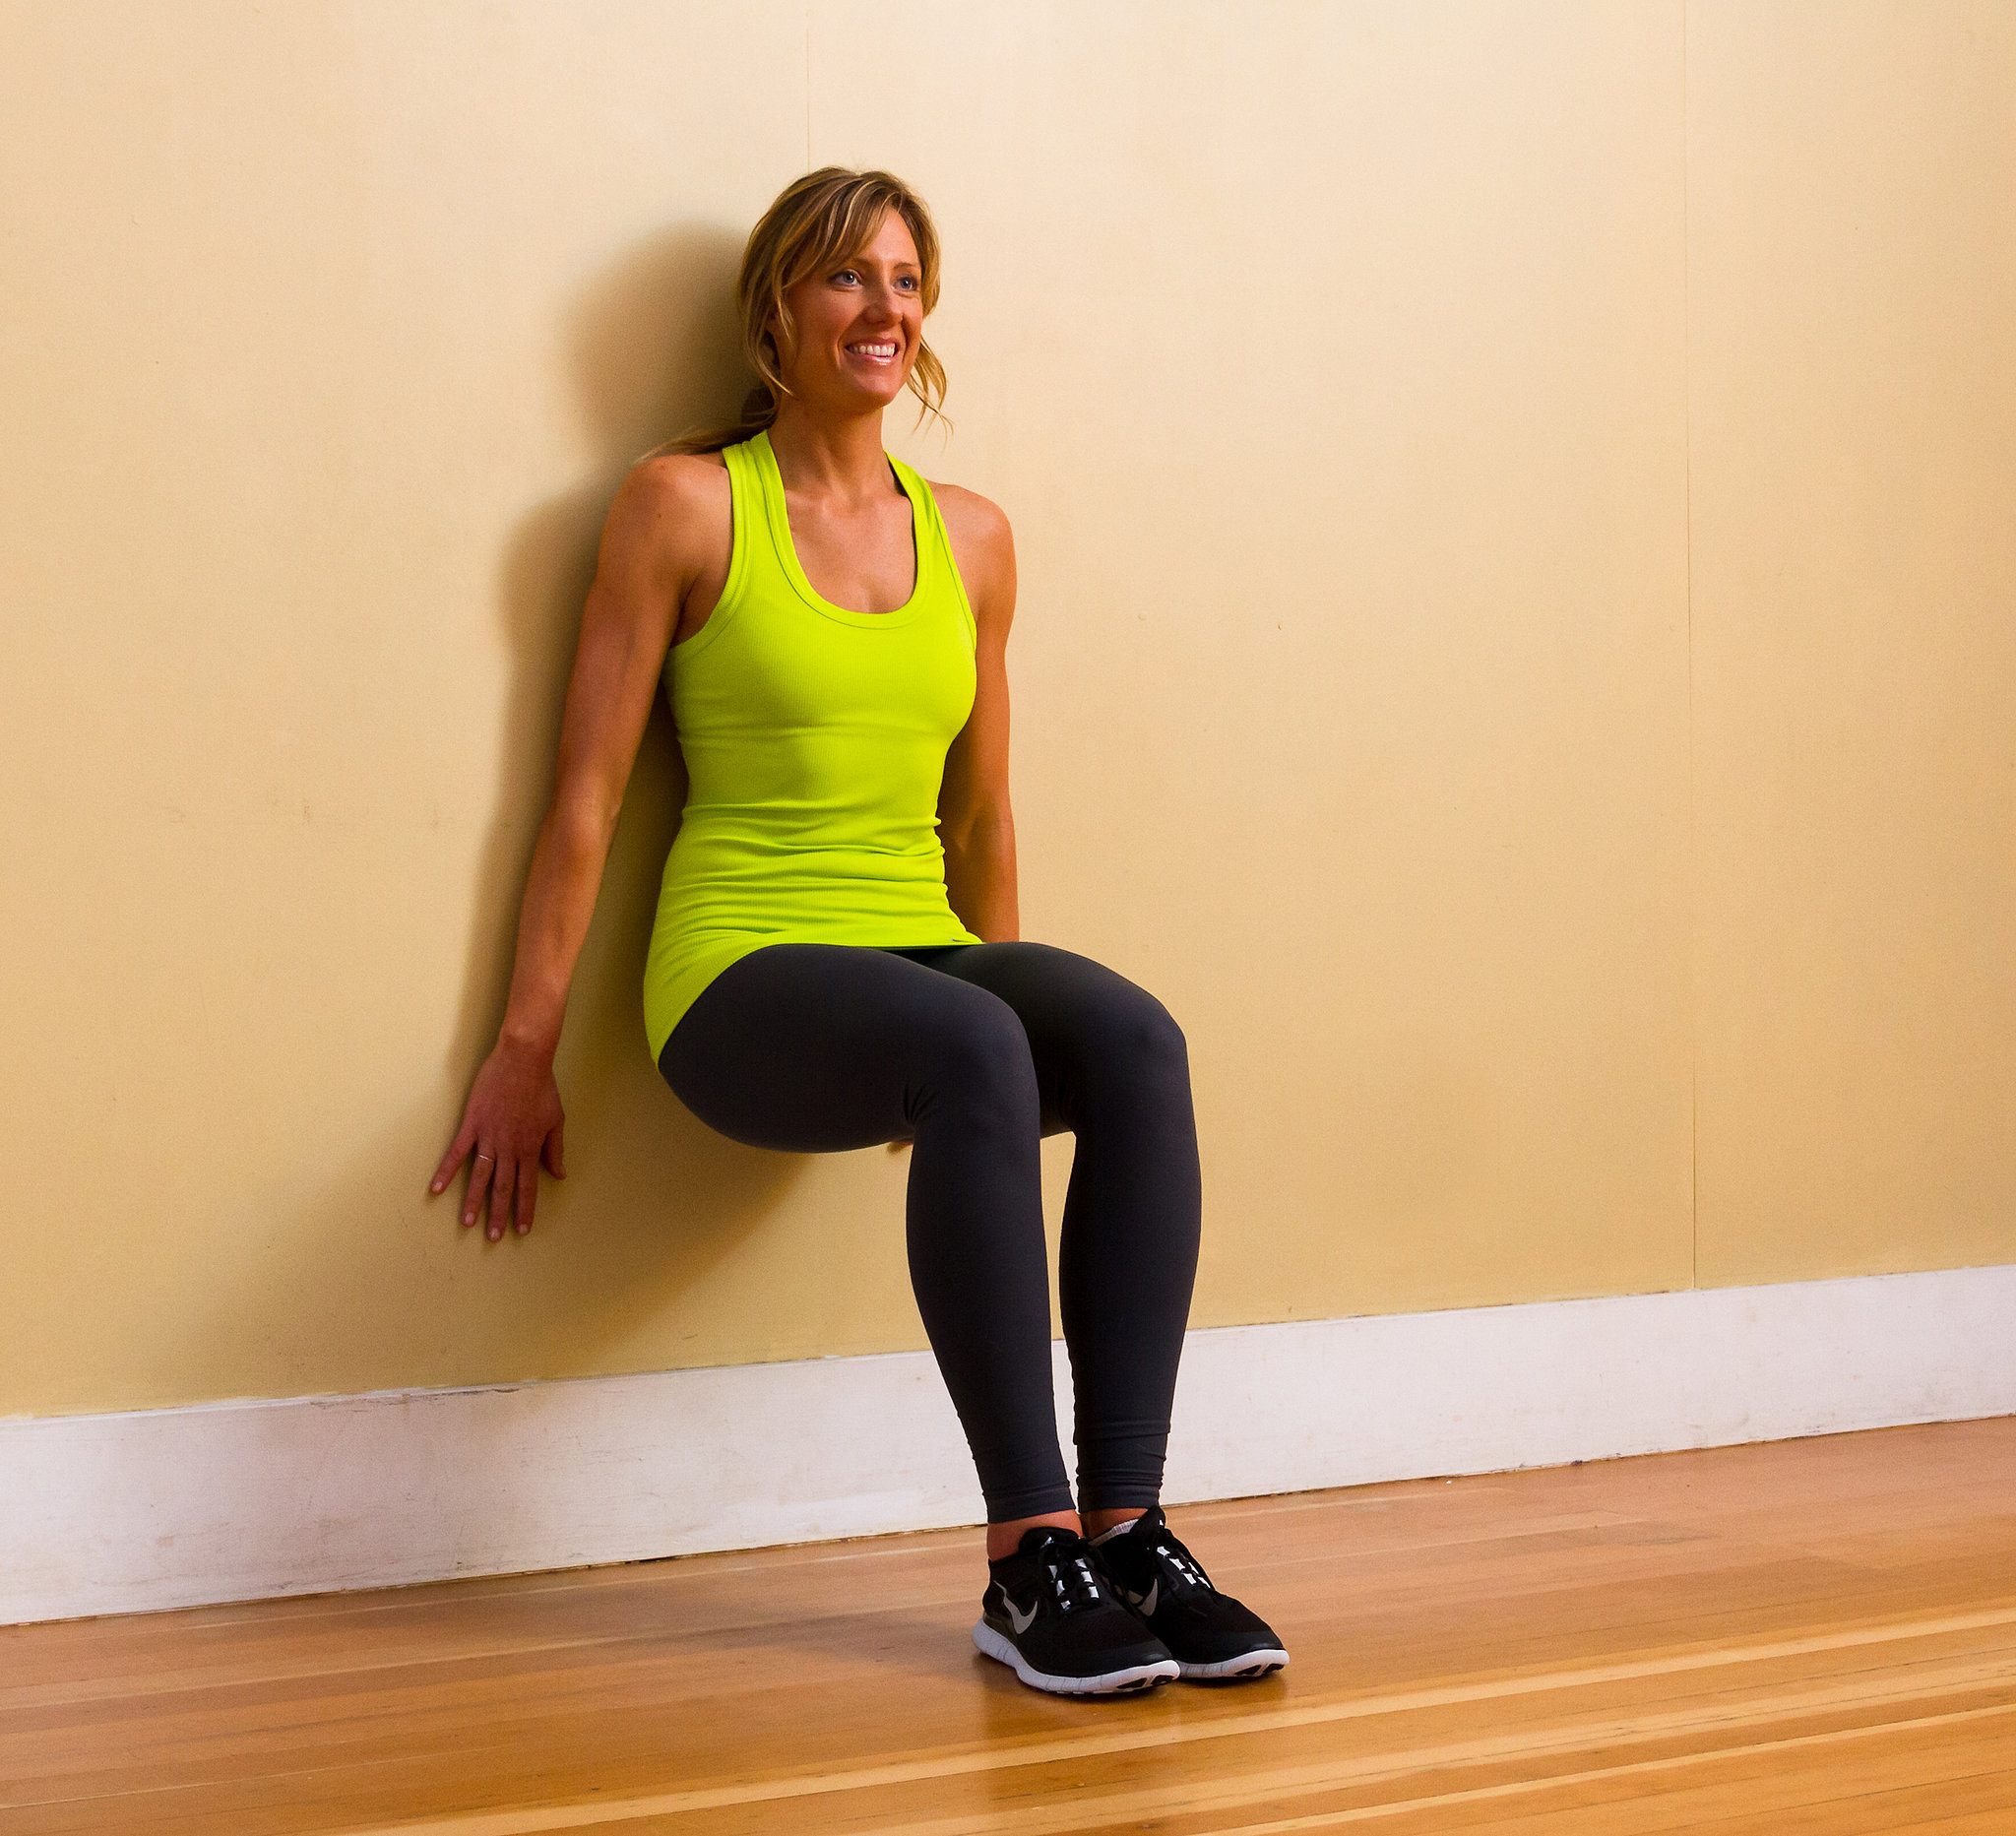 Workout: 15 Minute Full Body Workout You Can Do Everywhere